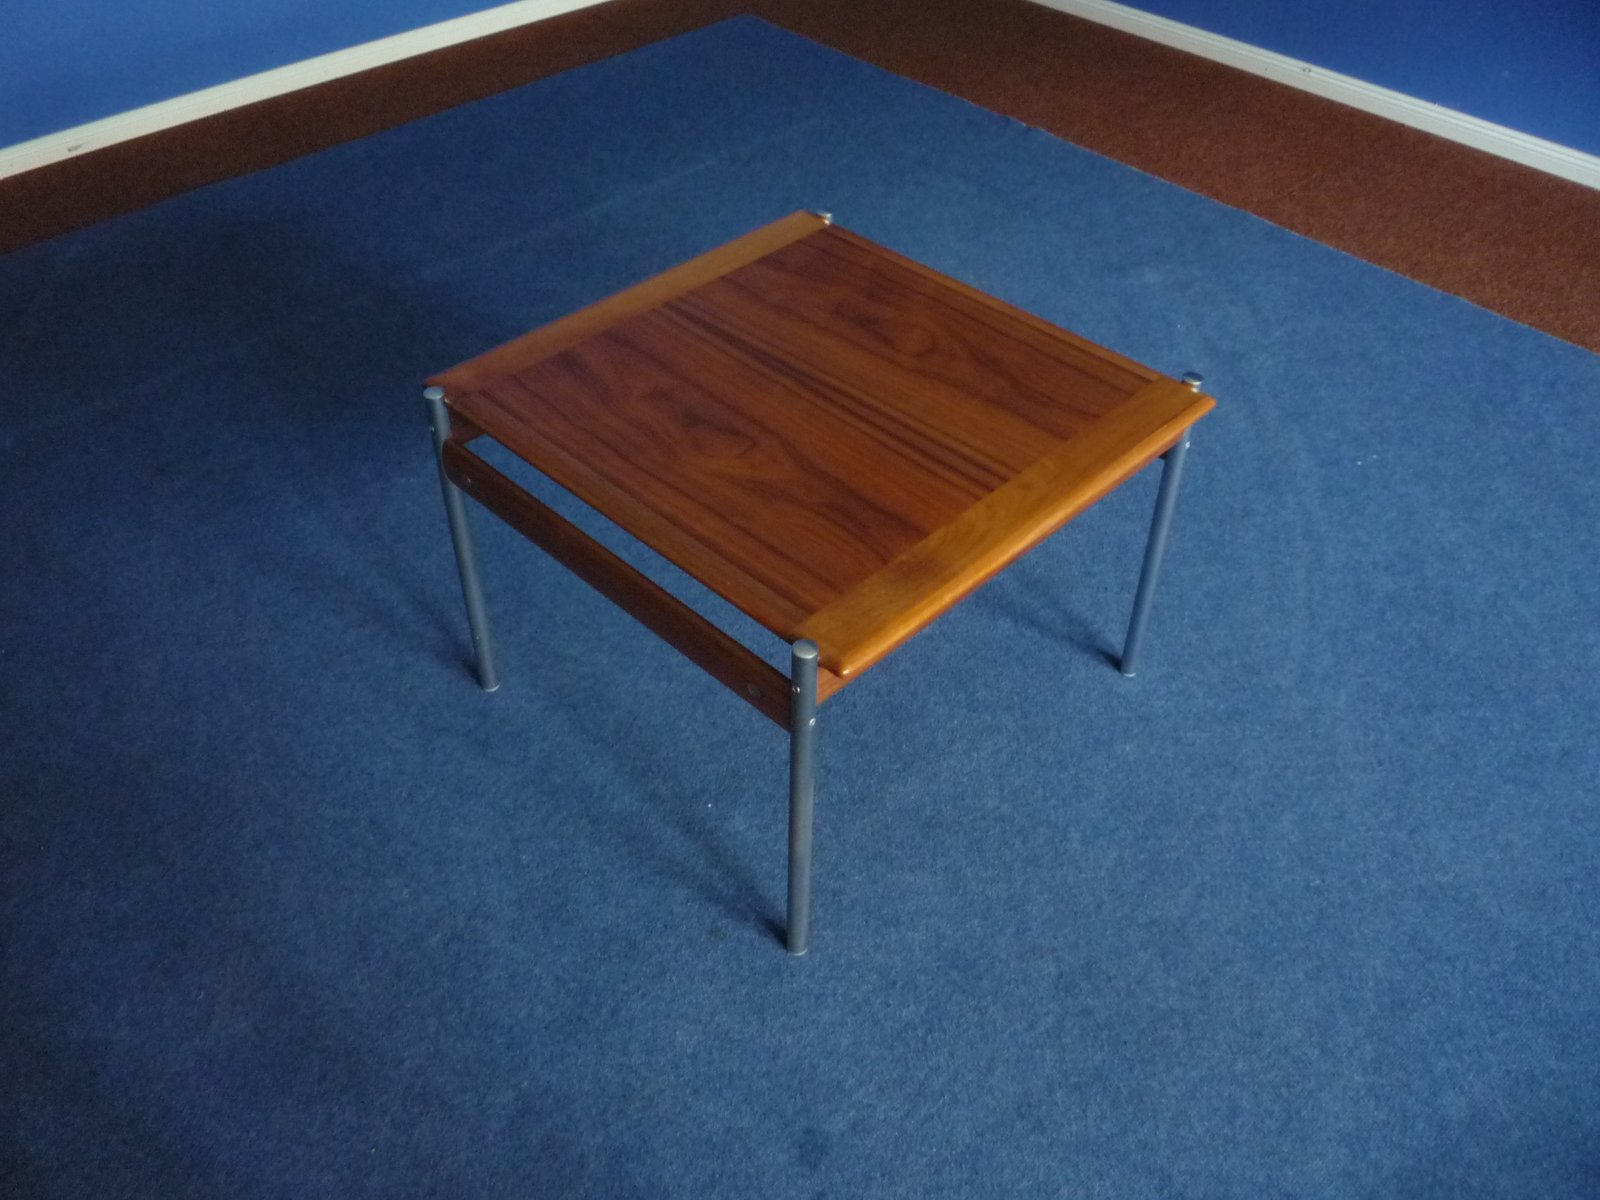 Vintage Norwegian Coffee Table by Sven Ivar Dysthe for Dokka